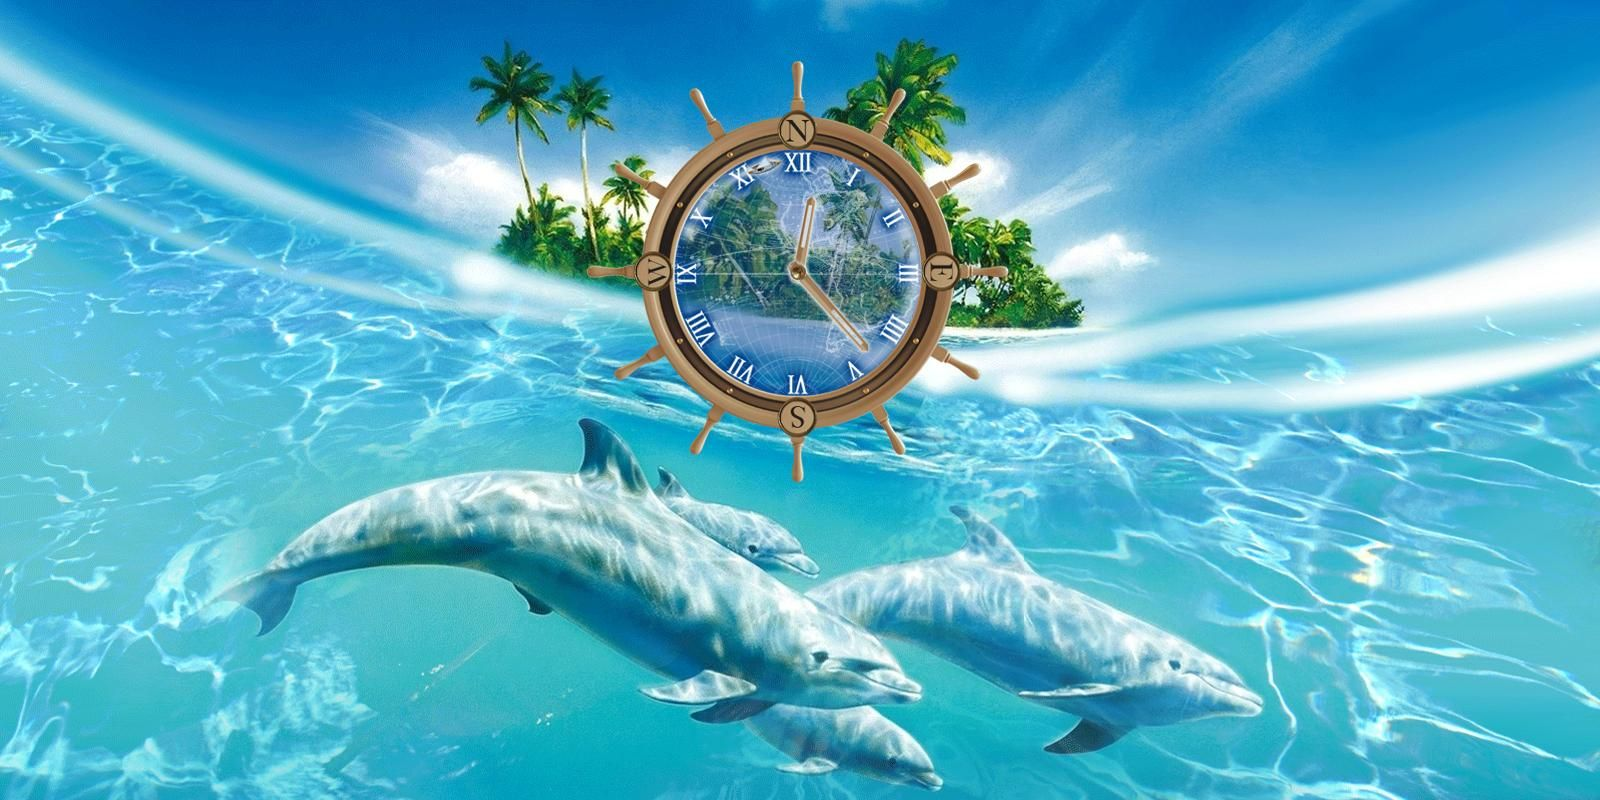 live moving wallpapers in hd for desktop с изображениями on live wall id=74508